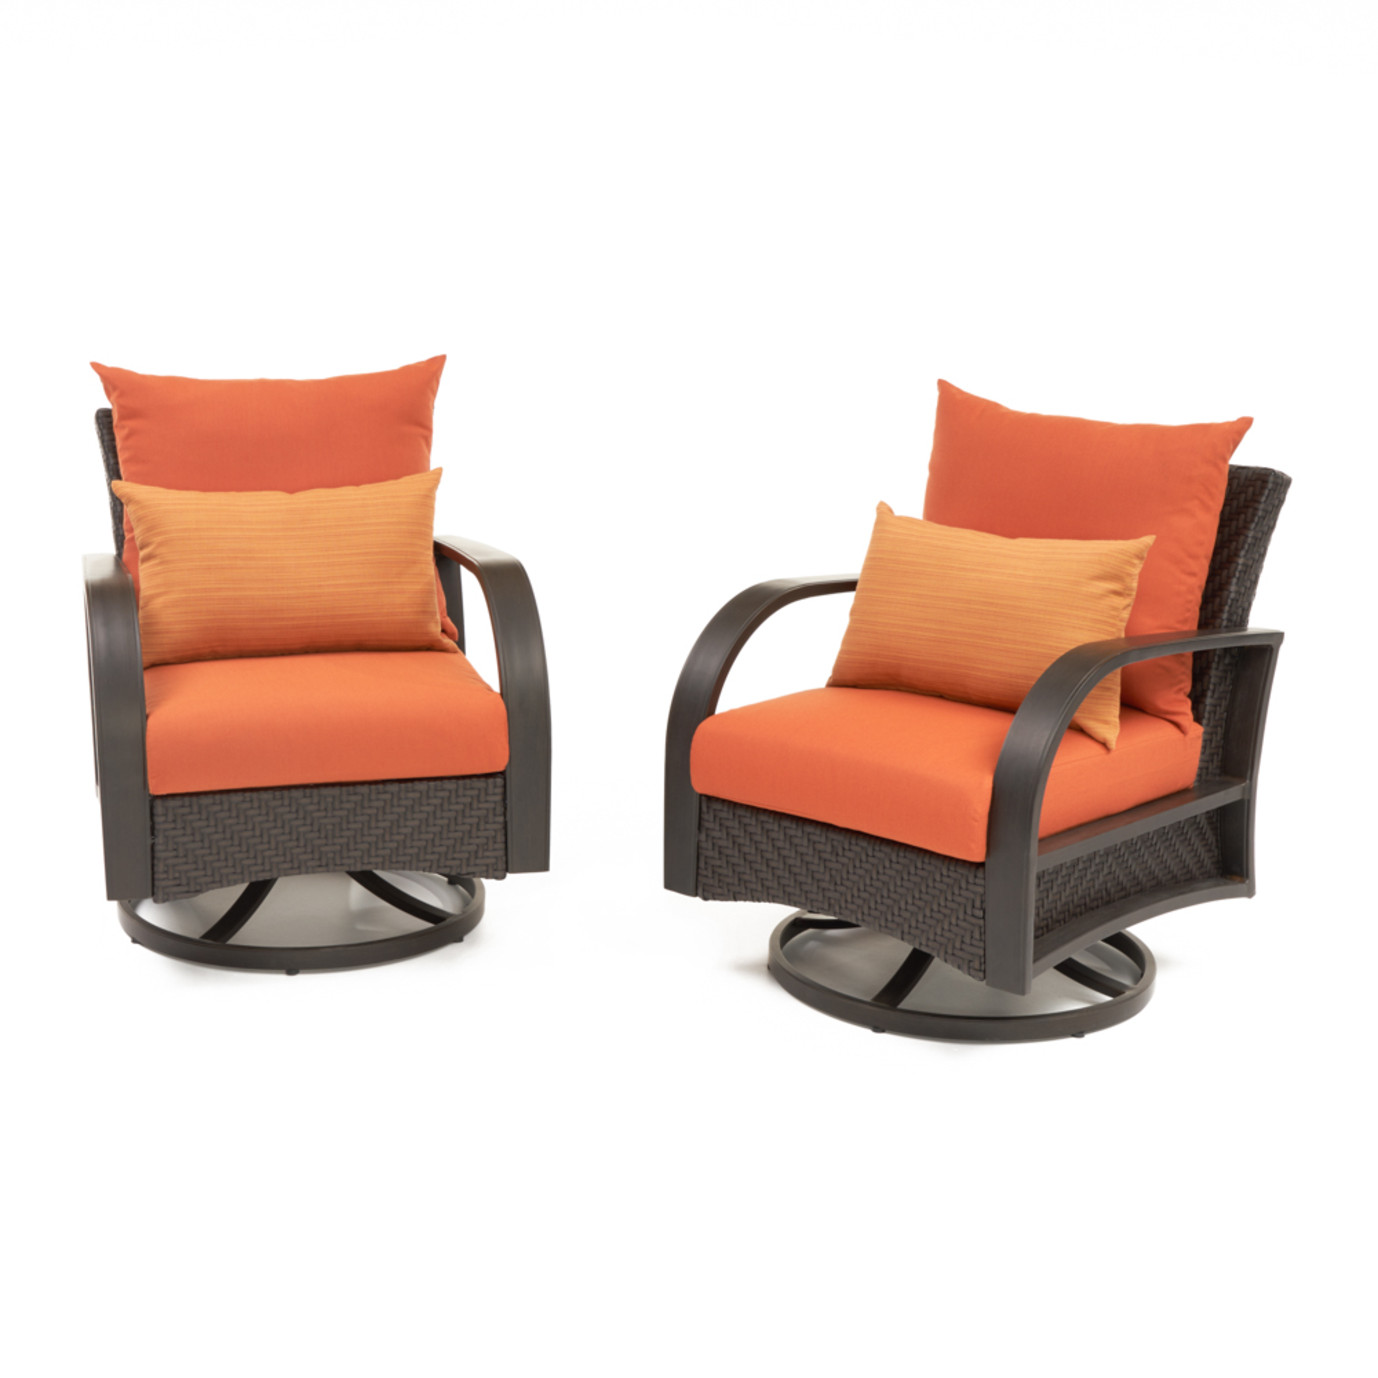 Barcelo™ Motion Club Chairs - Tikka Orange